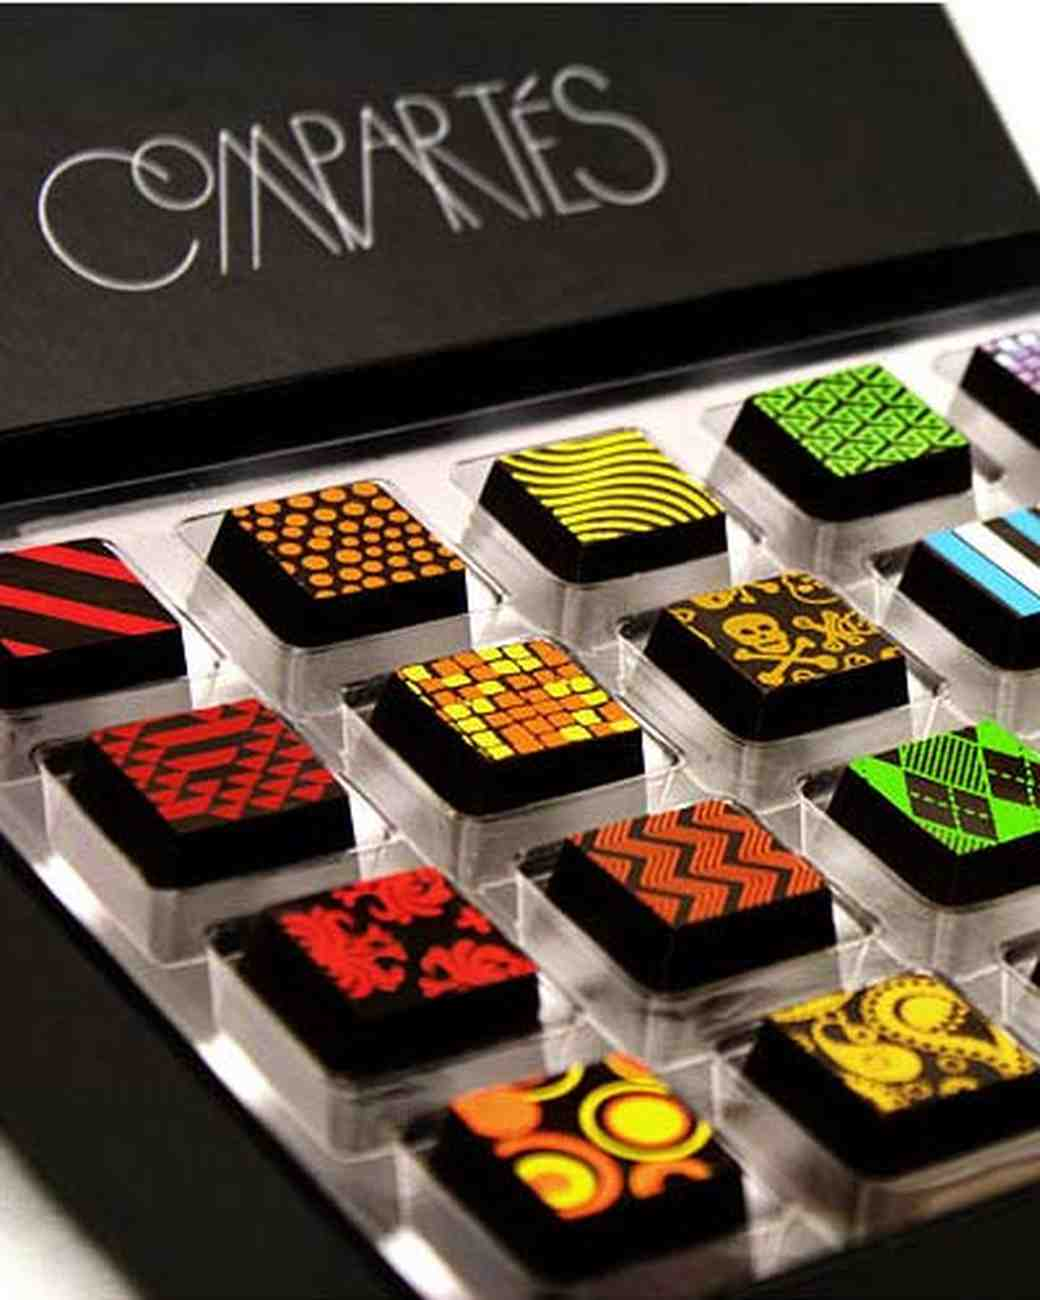 engagement-gifts-compartes-chocolate-truffles-0316.jpg